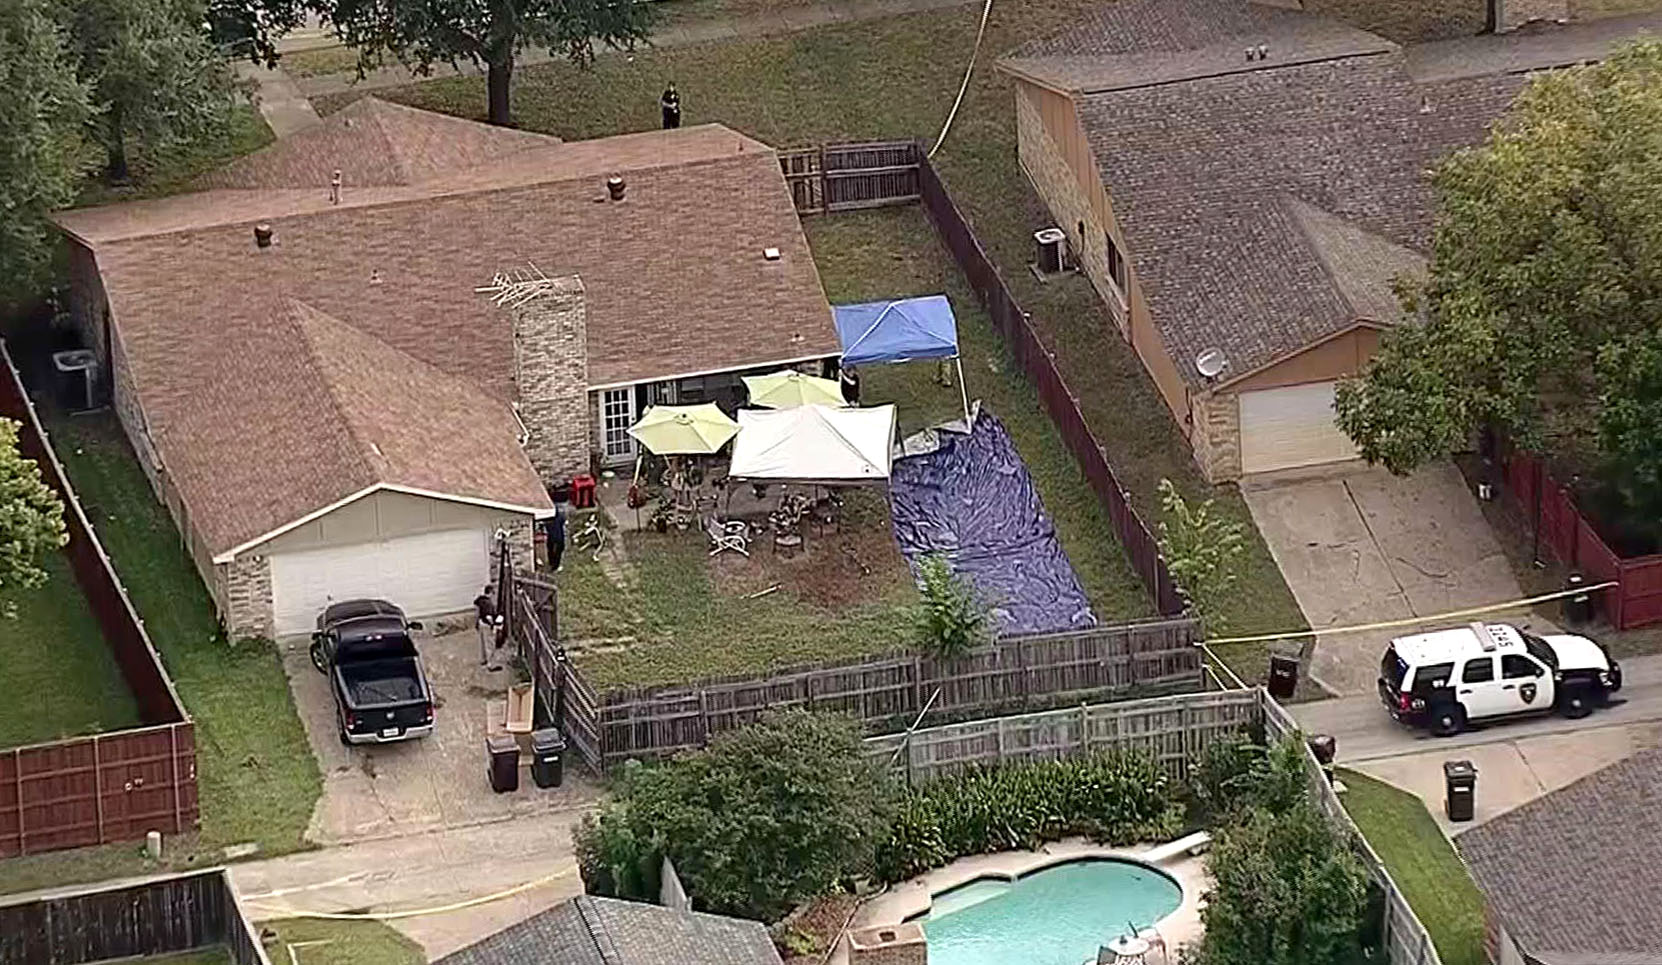 9 dead in Plano shooting that erupted during Cowboys watch party